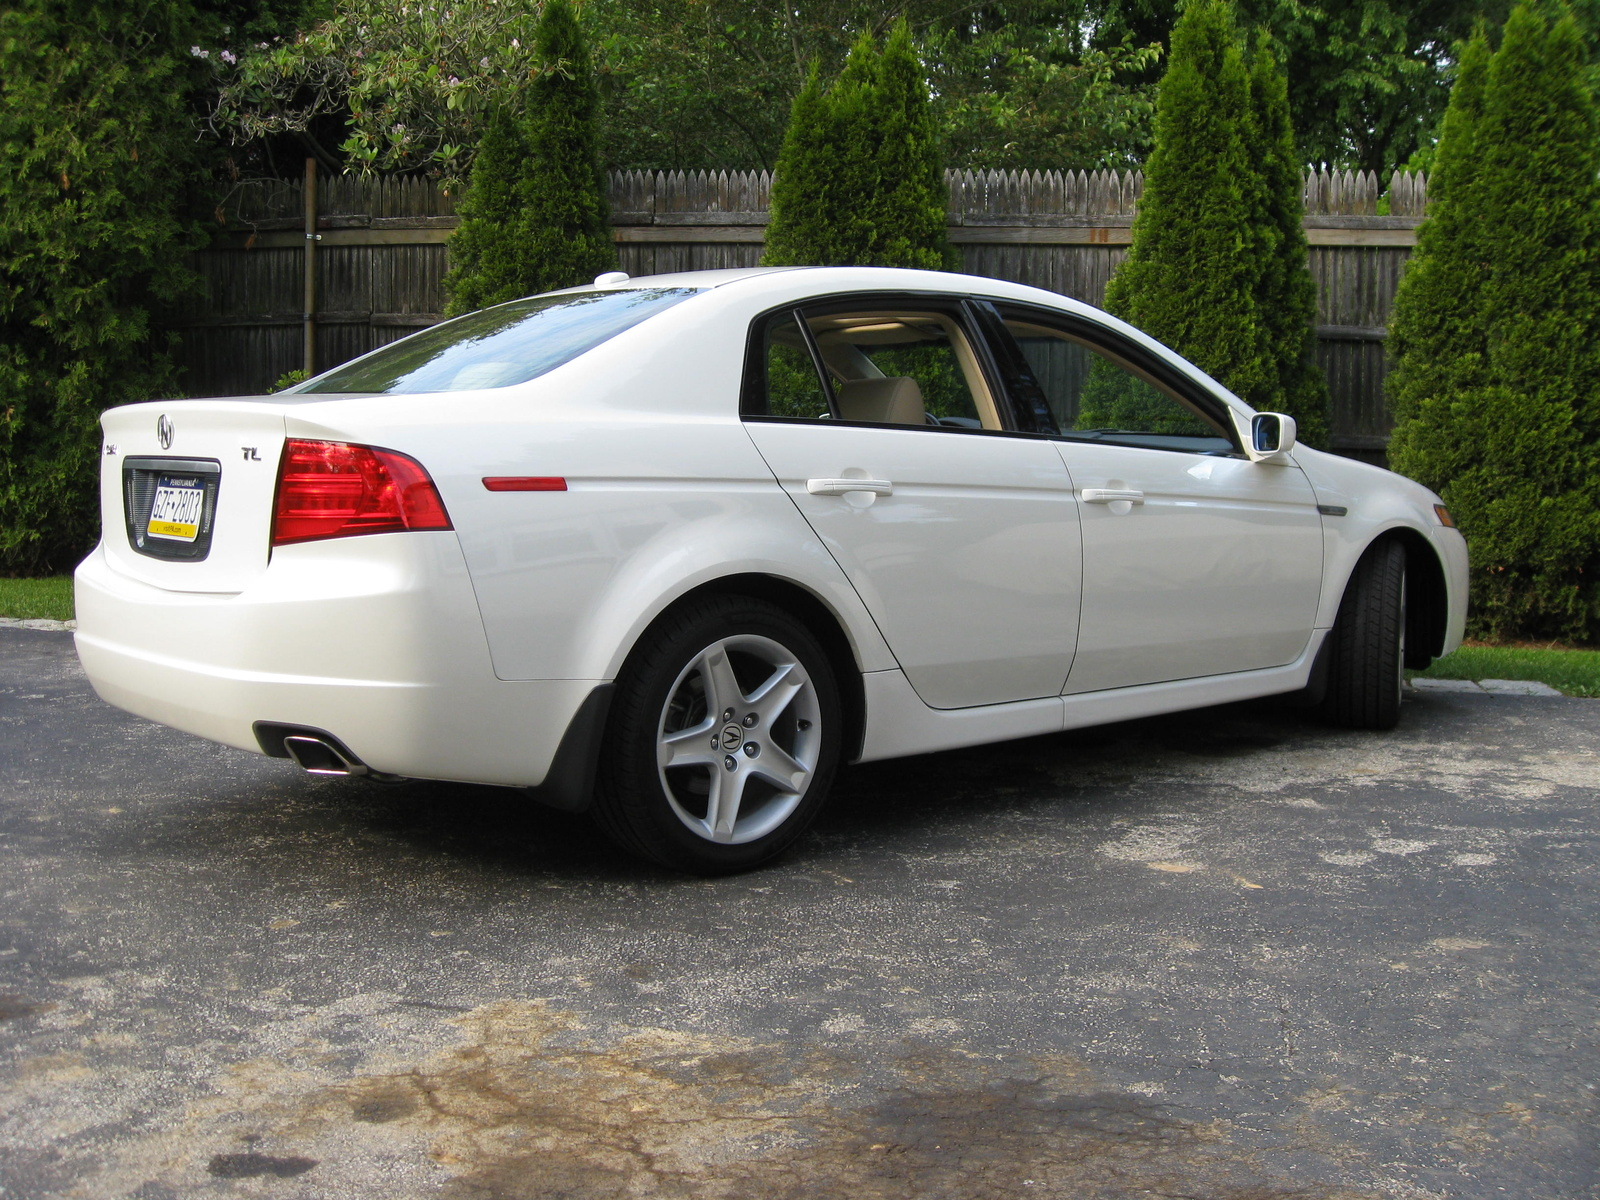 2004 Acura Tl Ii Pictures Rmation And Specs Auto HD Wallpapers Download free images and photos [musssic.tk]